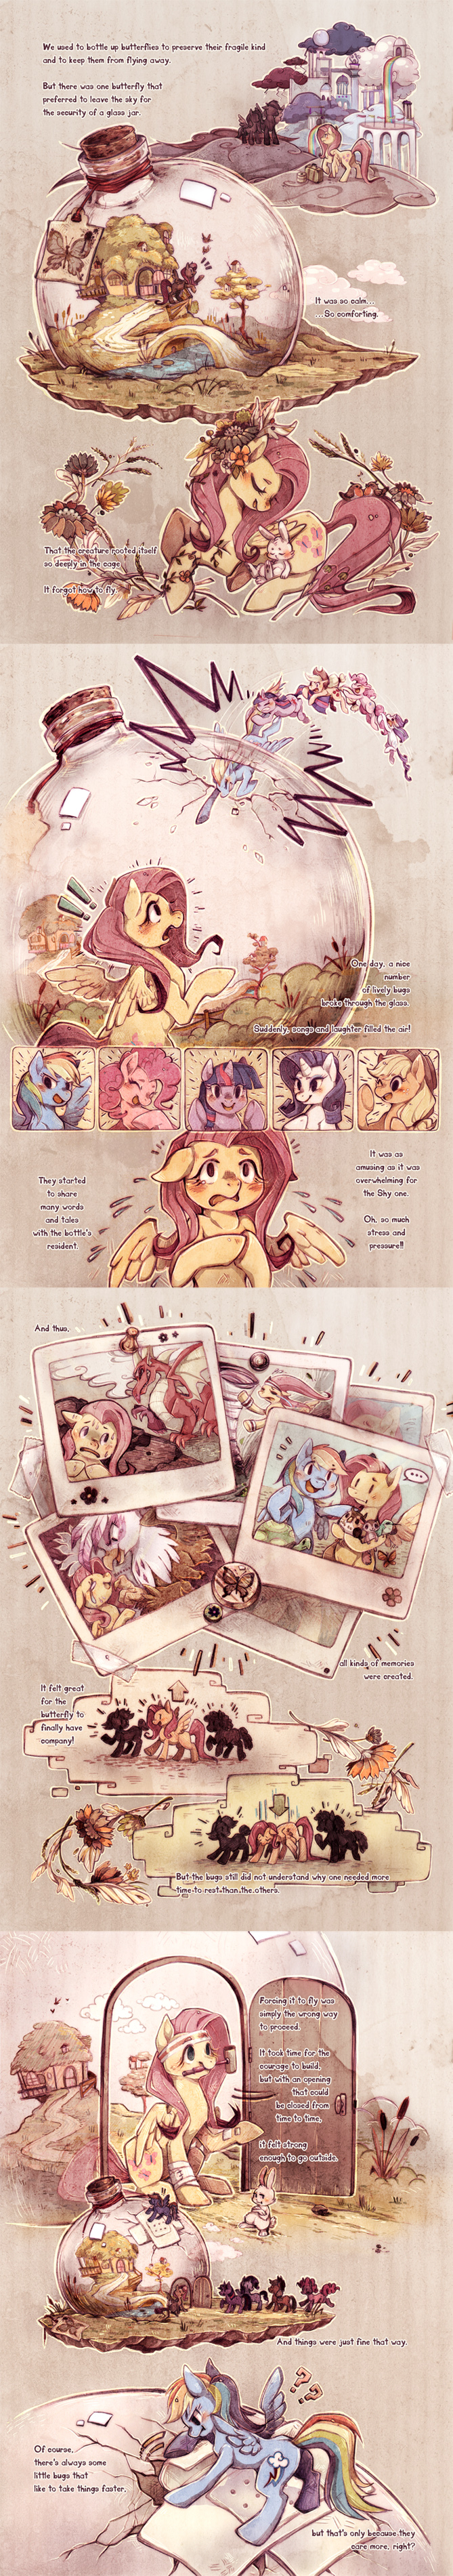 MLP comic - Butterfly by Mi-eau